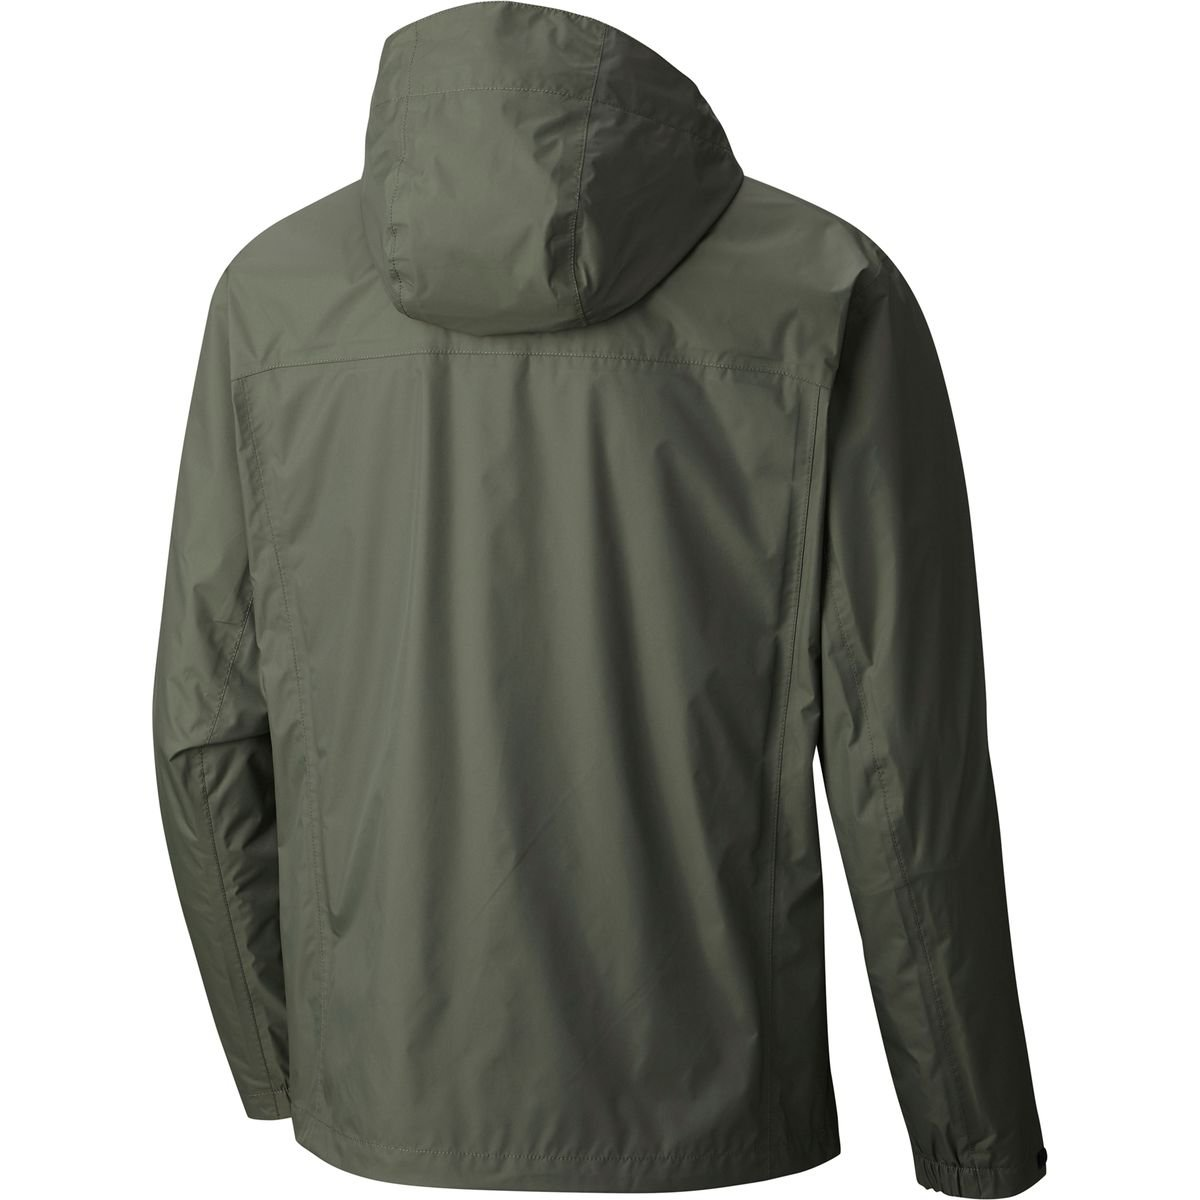 Columbia Men's Watertight Ii Jacket, Gravel, Large by Columbia (Image #2)